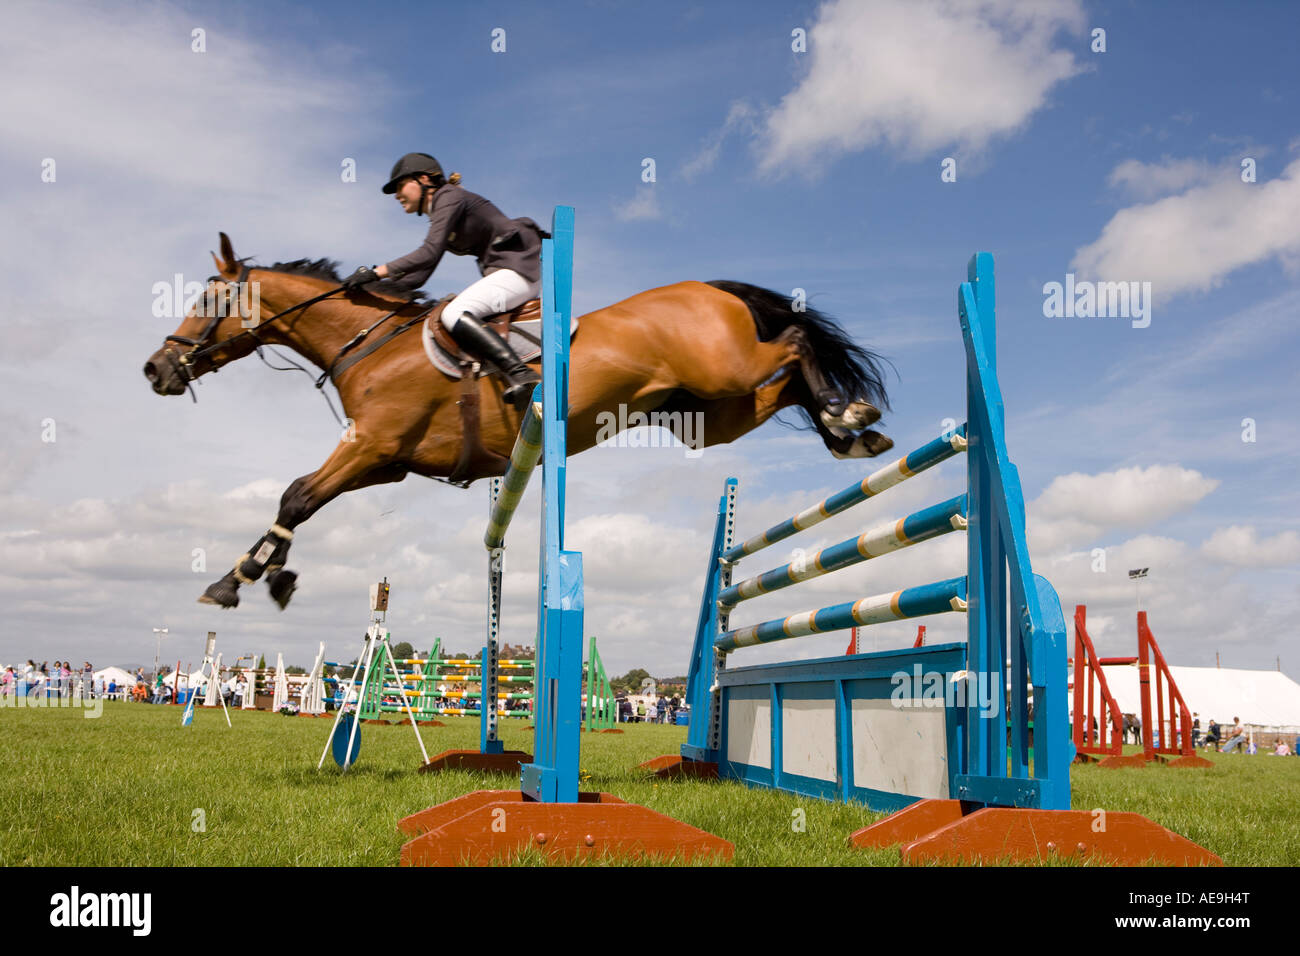 Horse Jumping Stock Photos & Horse Jumping Stock Images ...